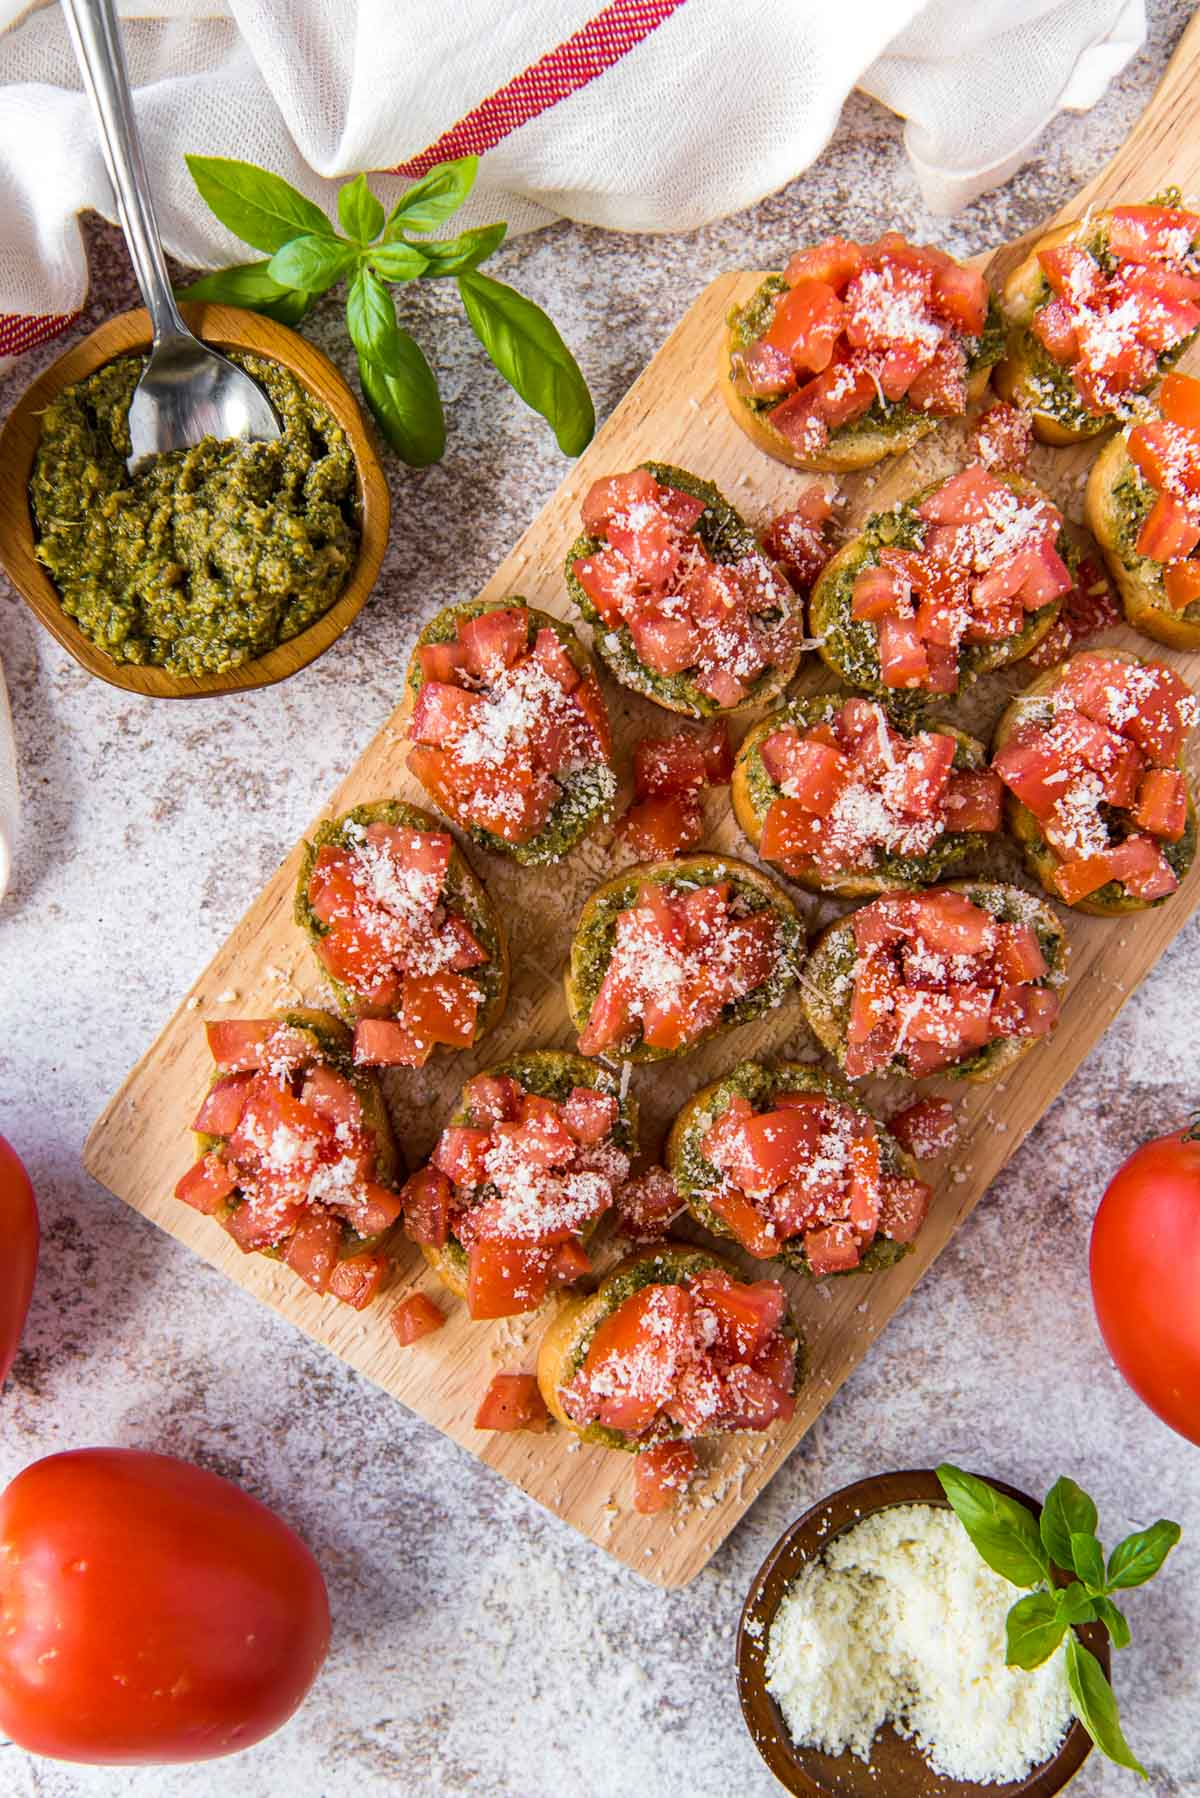 wood cutting board with bruschetta pieces, a dish of pesto, a dish of parmesan cheese, tomatoes